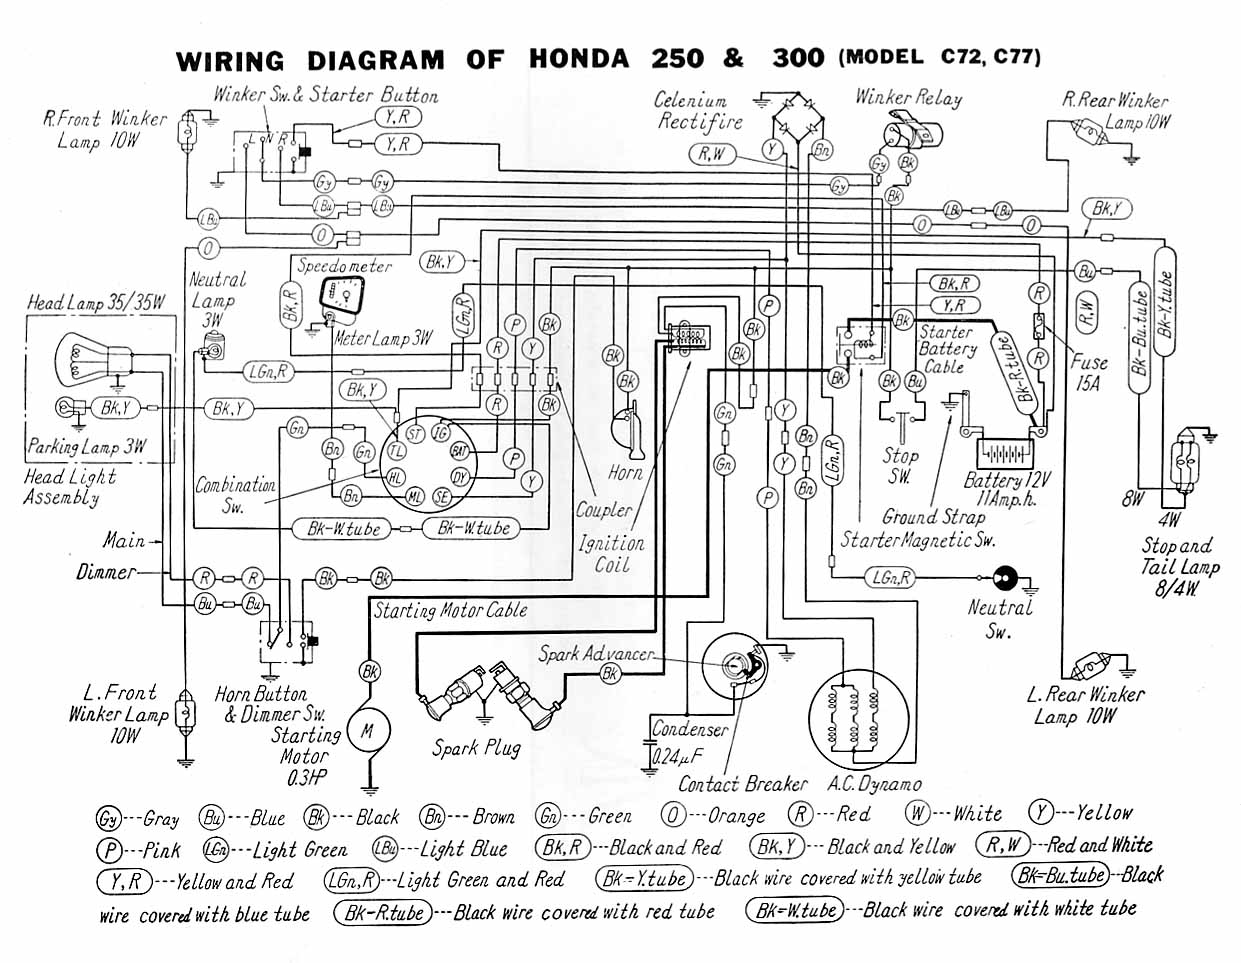 C77 wiring diagrams honda cm400 wiring diagram at webbmarketing.co